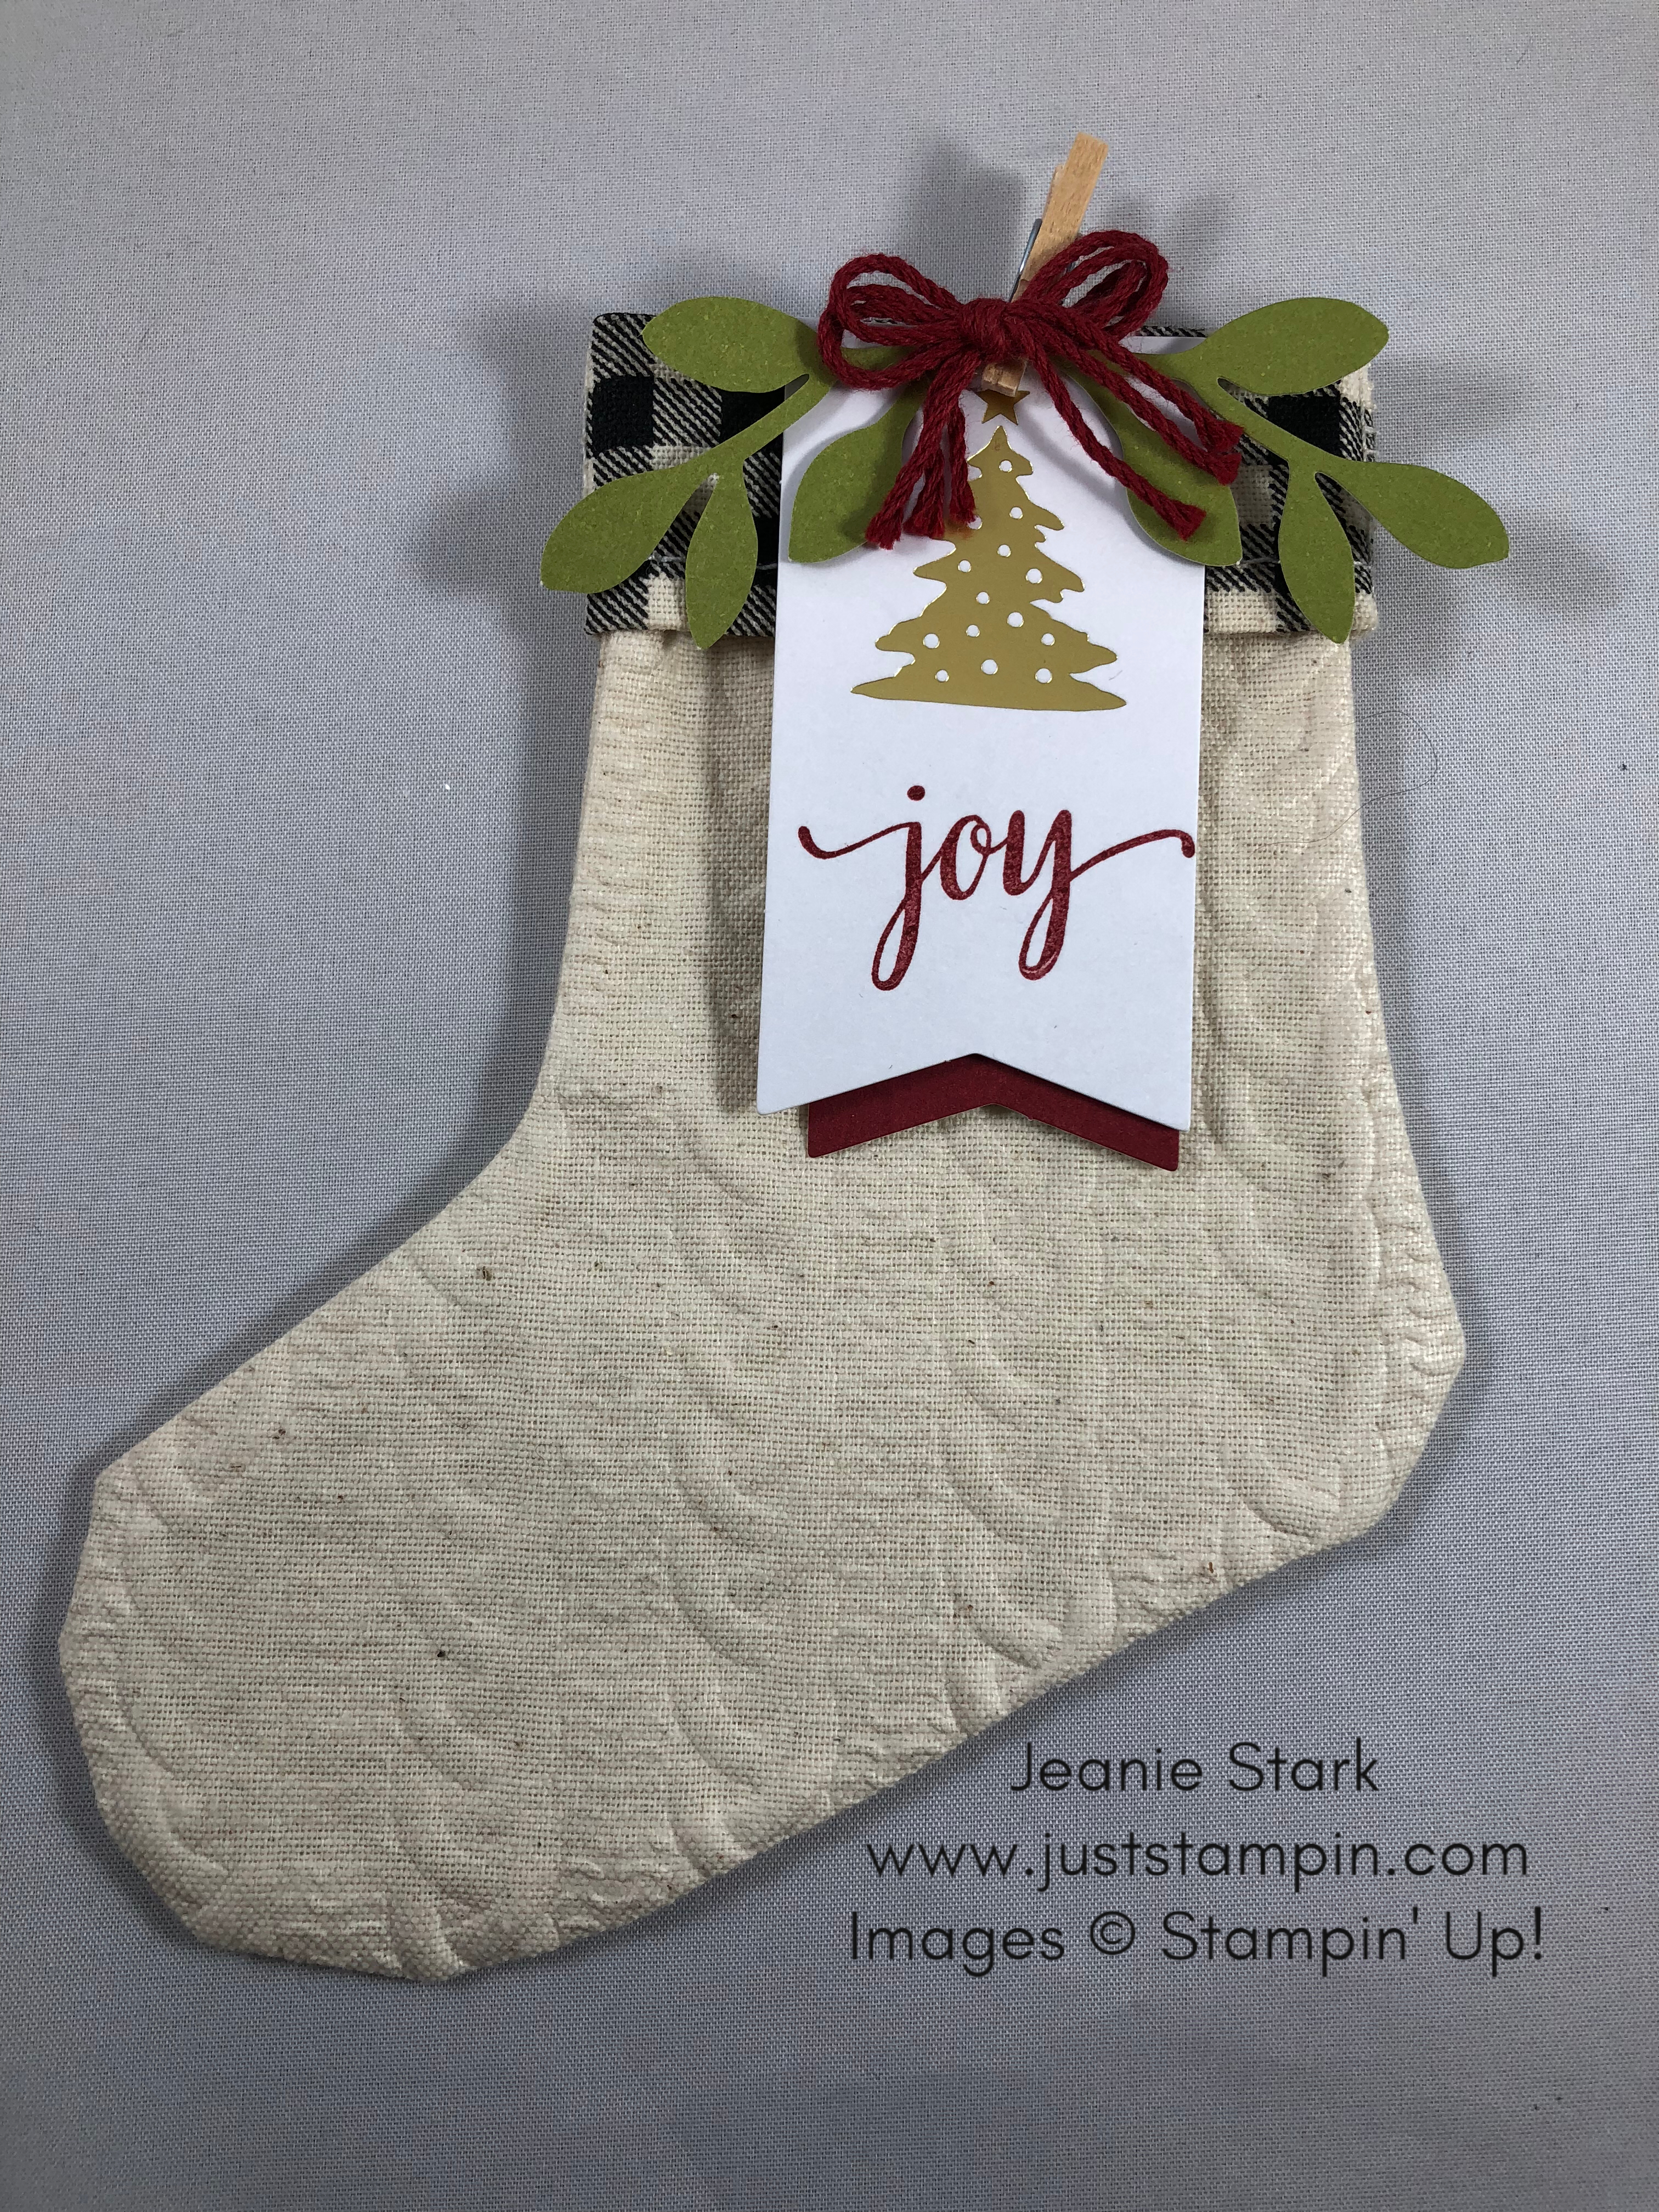 Stampin Up Paper Pumpkin Back and Plaid embossed Christmas Stocking - Jeanie Stark StampinUp www.juststampin.com